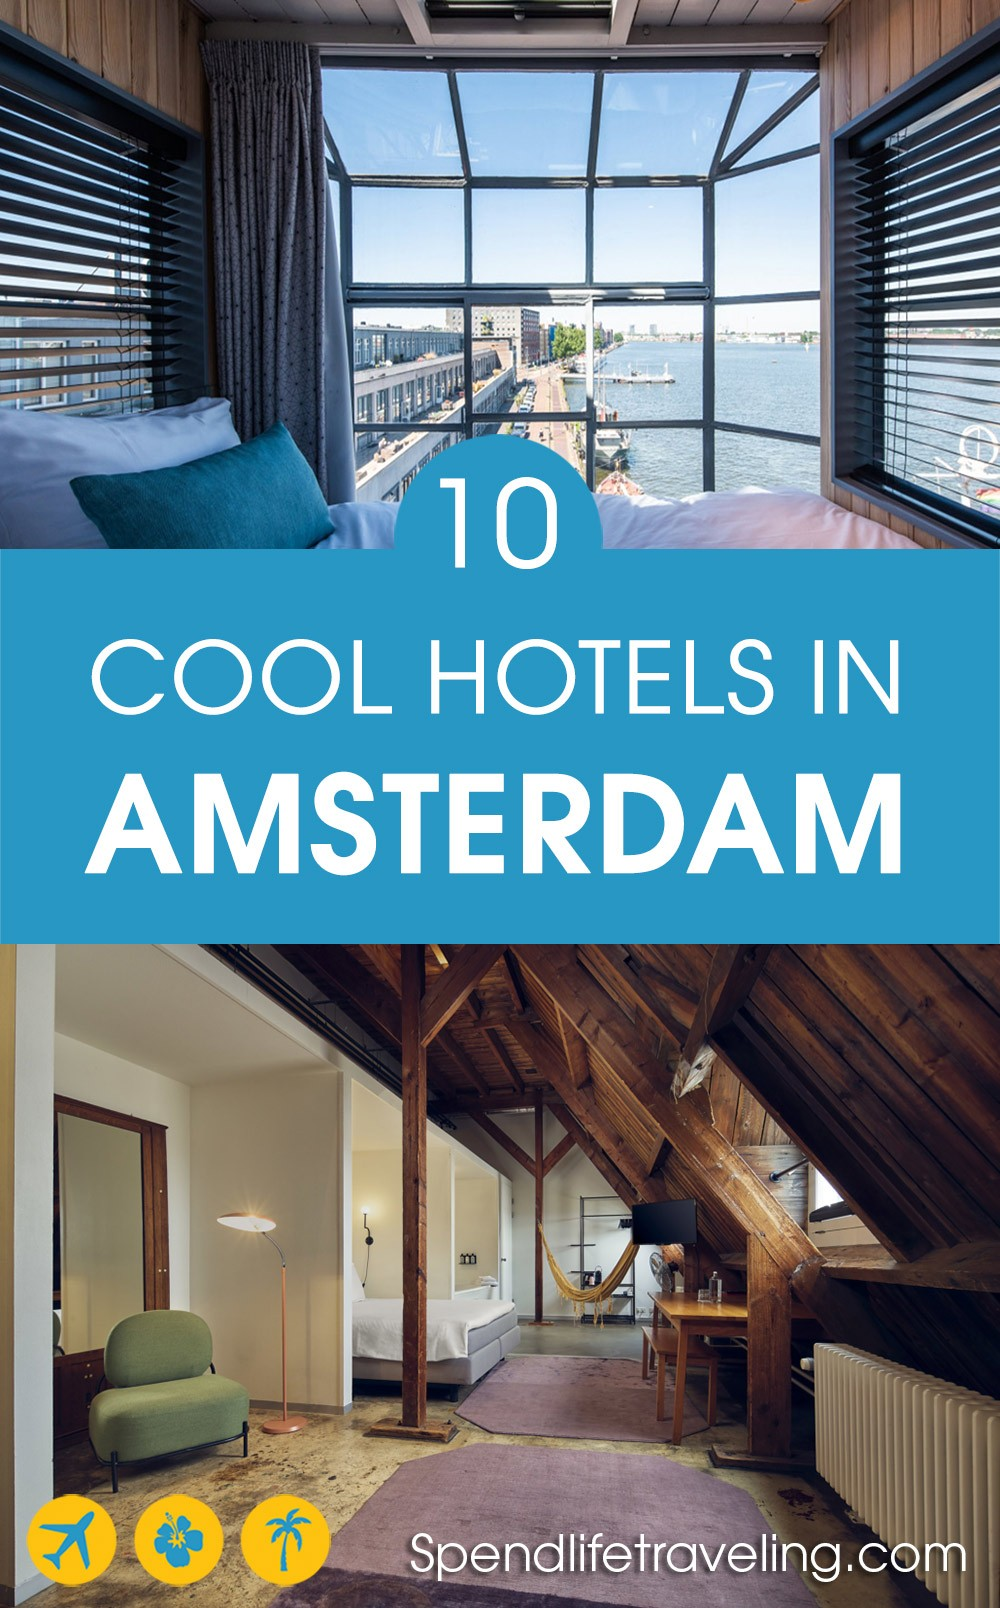 If you are looking for a unique, different, cool hotel in Amsterdam, or a boutique apartment, check out this list!